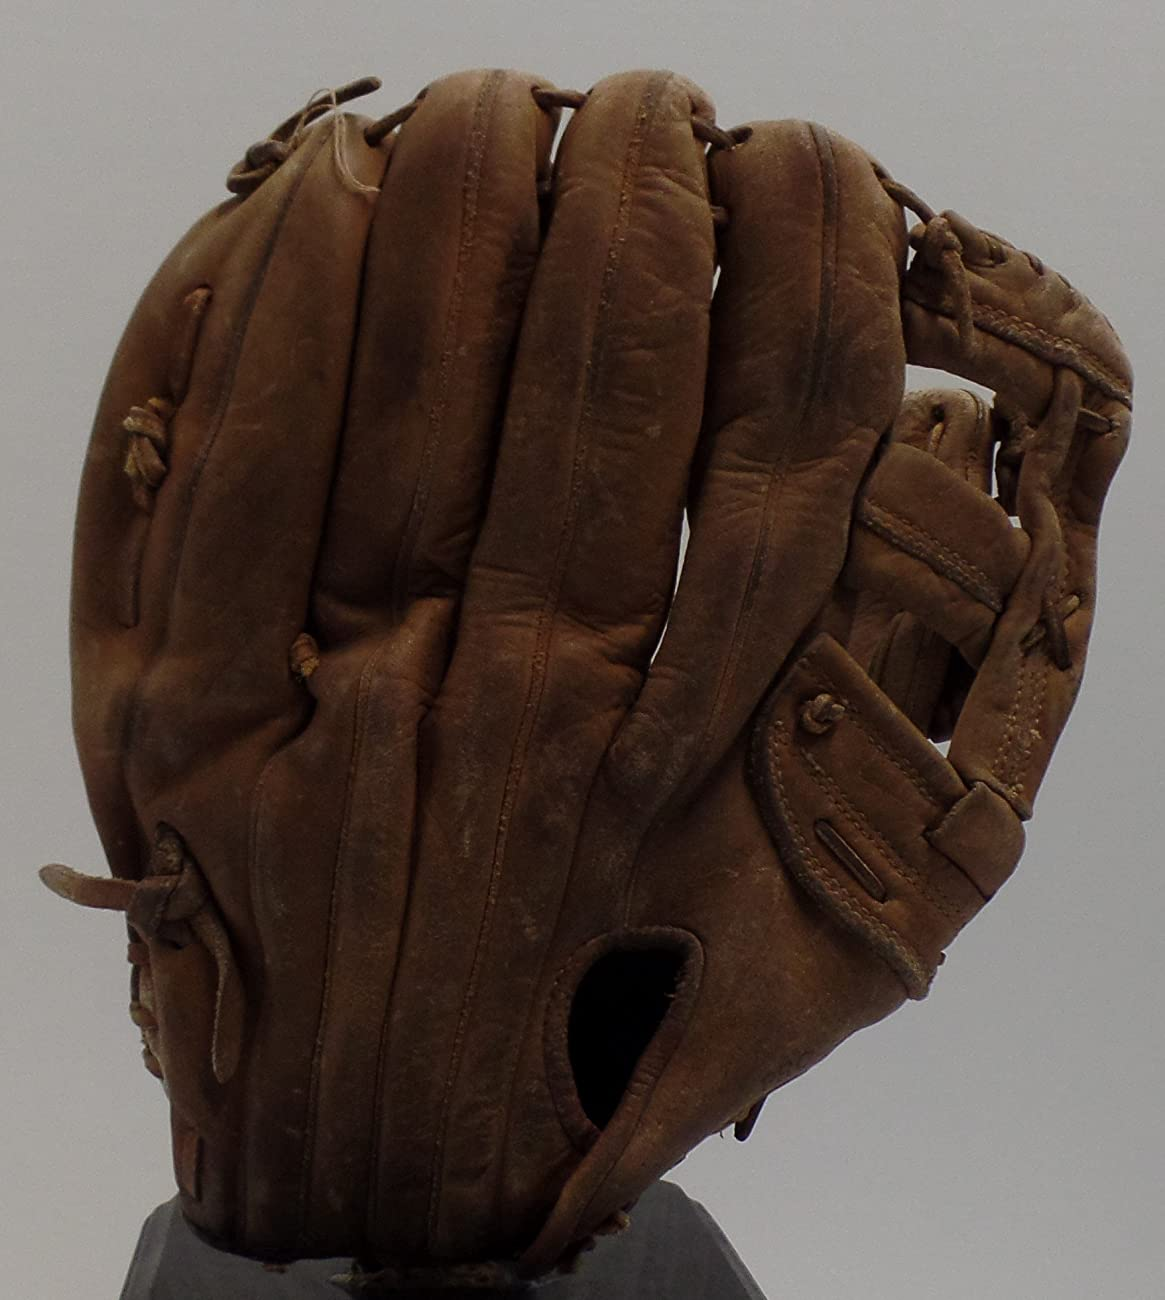 Vintage Bobby Bonds Pro Style Baseball Glove - Wilson Right Hand Thrower (Great for Display - Could Be Used Everyday) Free Shipping & Tracking 3